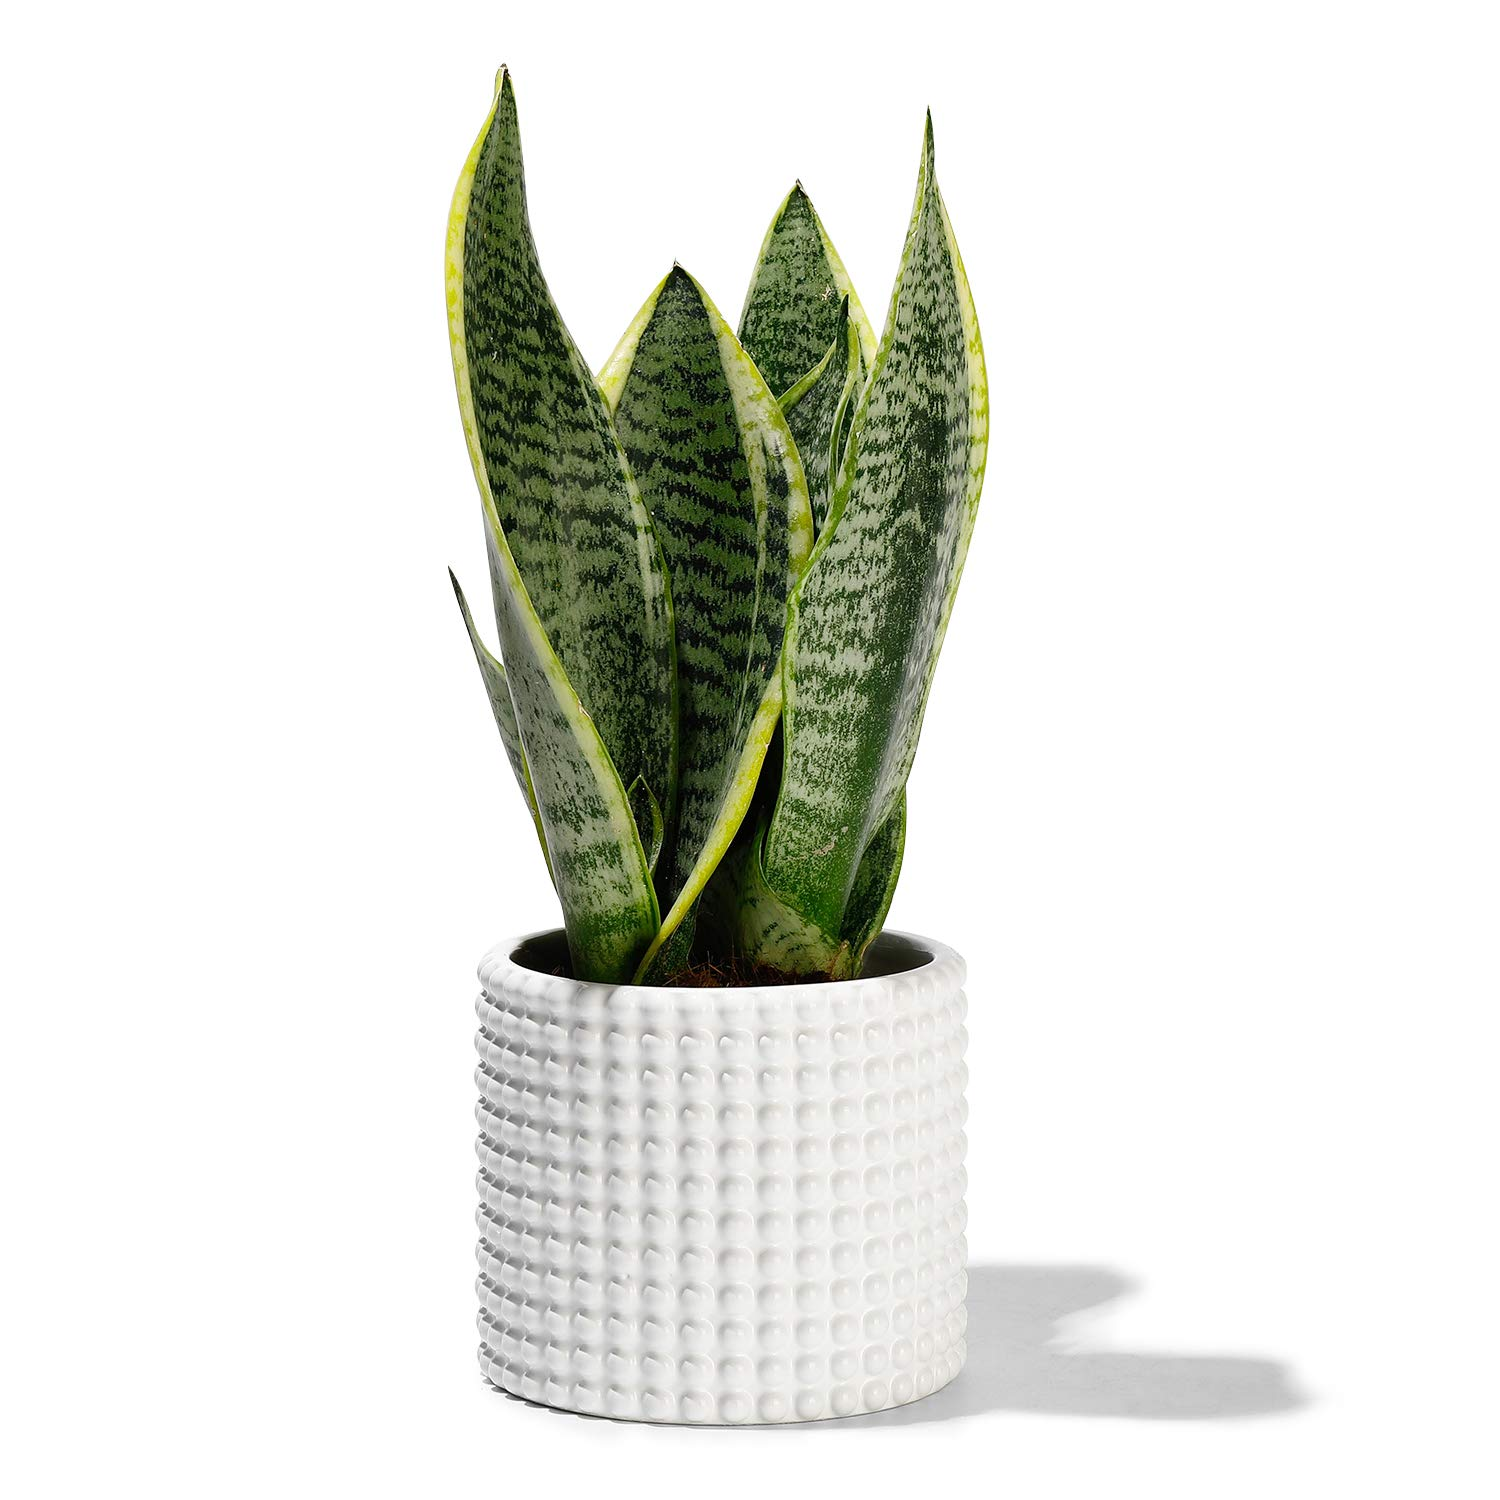 POTEY 055002 White Ceramic Vintage-Style Hobnail Textured Flower Planter Pots for Indoor Plants Flower Succulent with Drainage Hole(4.8 Inch D, Plant NOT Included)